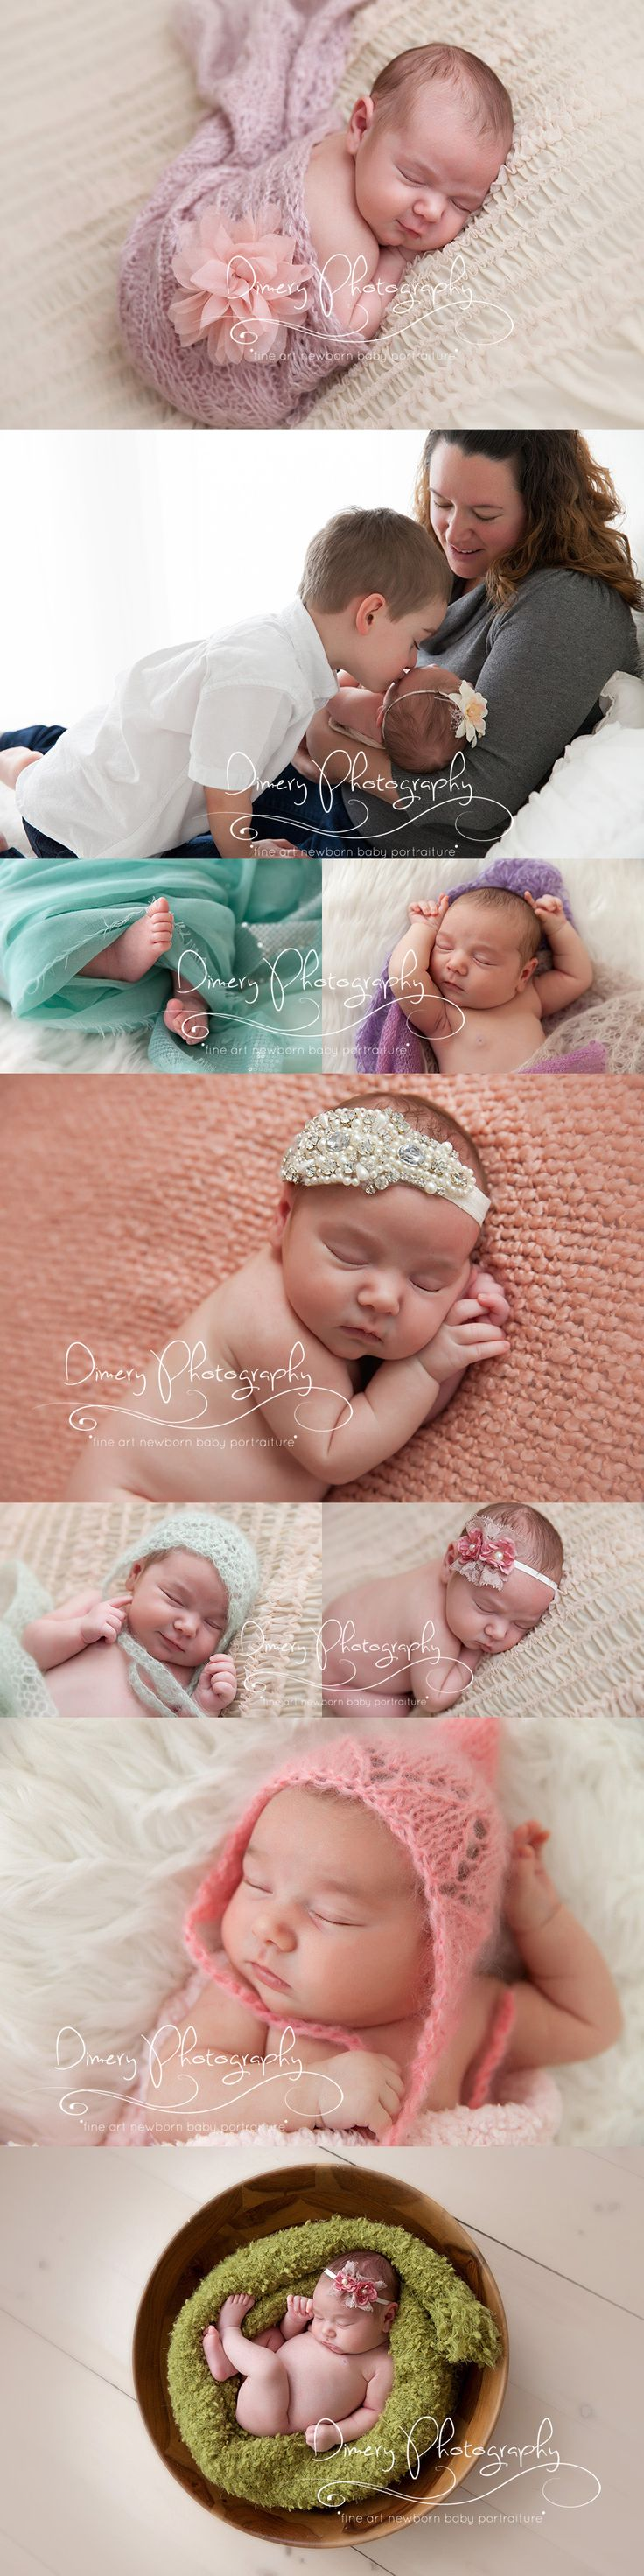 401 best newborn photos images on pinterest family photographer diy rose of coffee filter flowers diy crafts home made easy crafts craft idea crafts ideas diy ideas diy crafts diy idea do it yourself diy projects diy solutioingenieria Choice Image